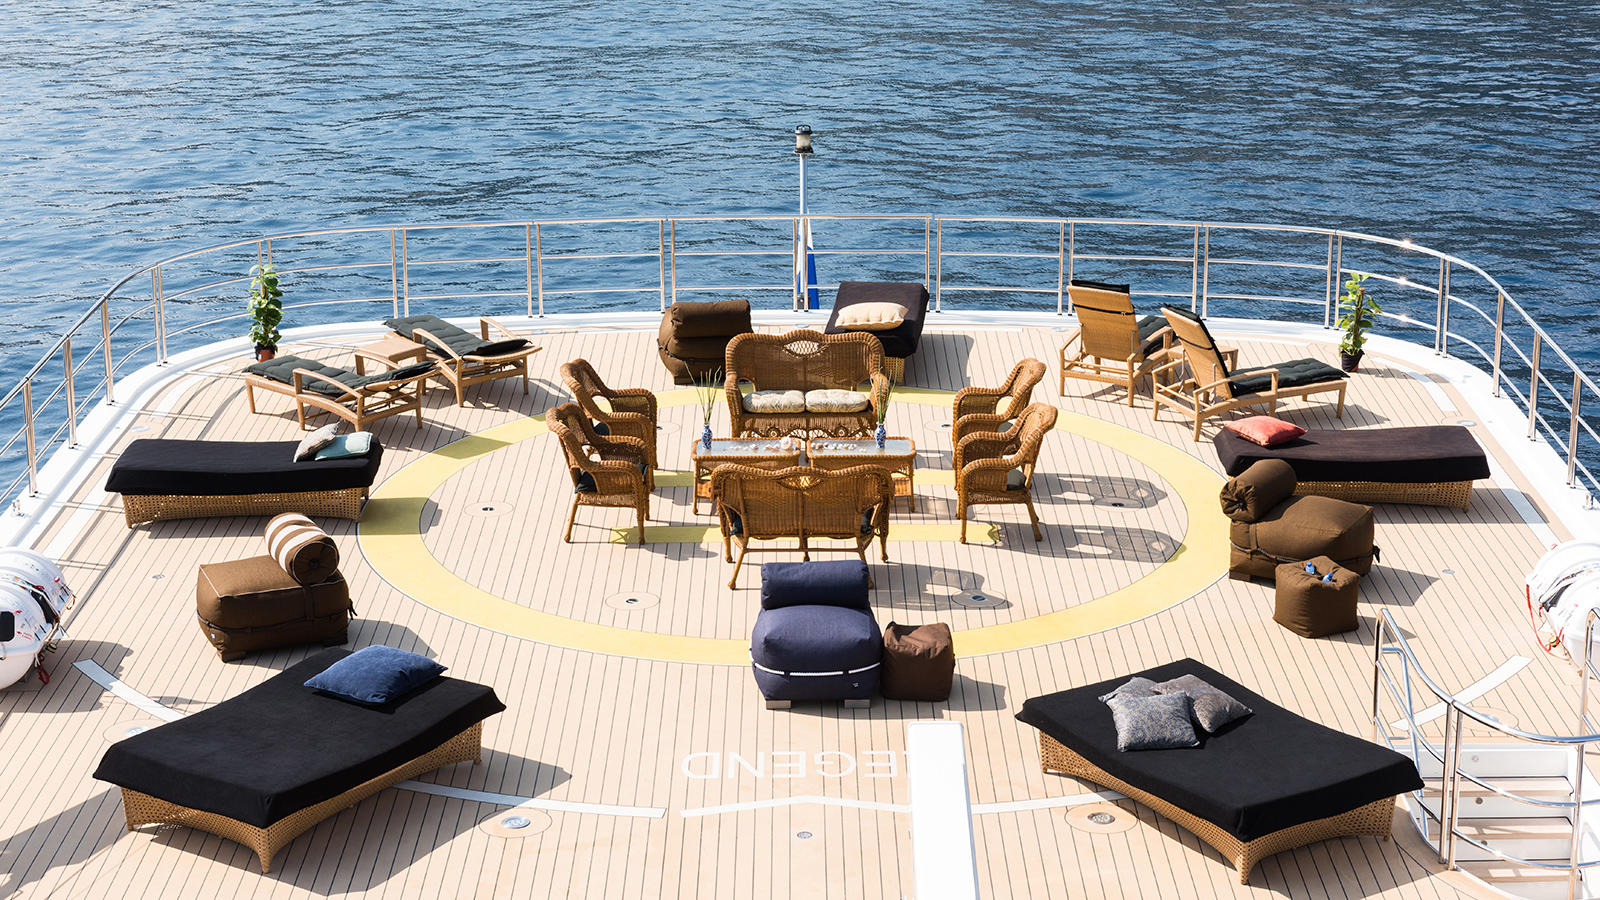 Helideck convertible into lounging and sunbathing area - Photo Jeff Brown